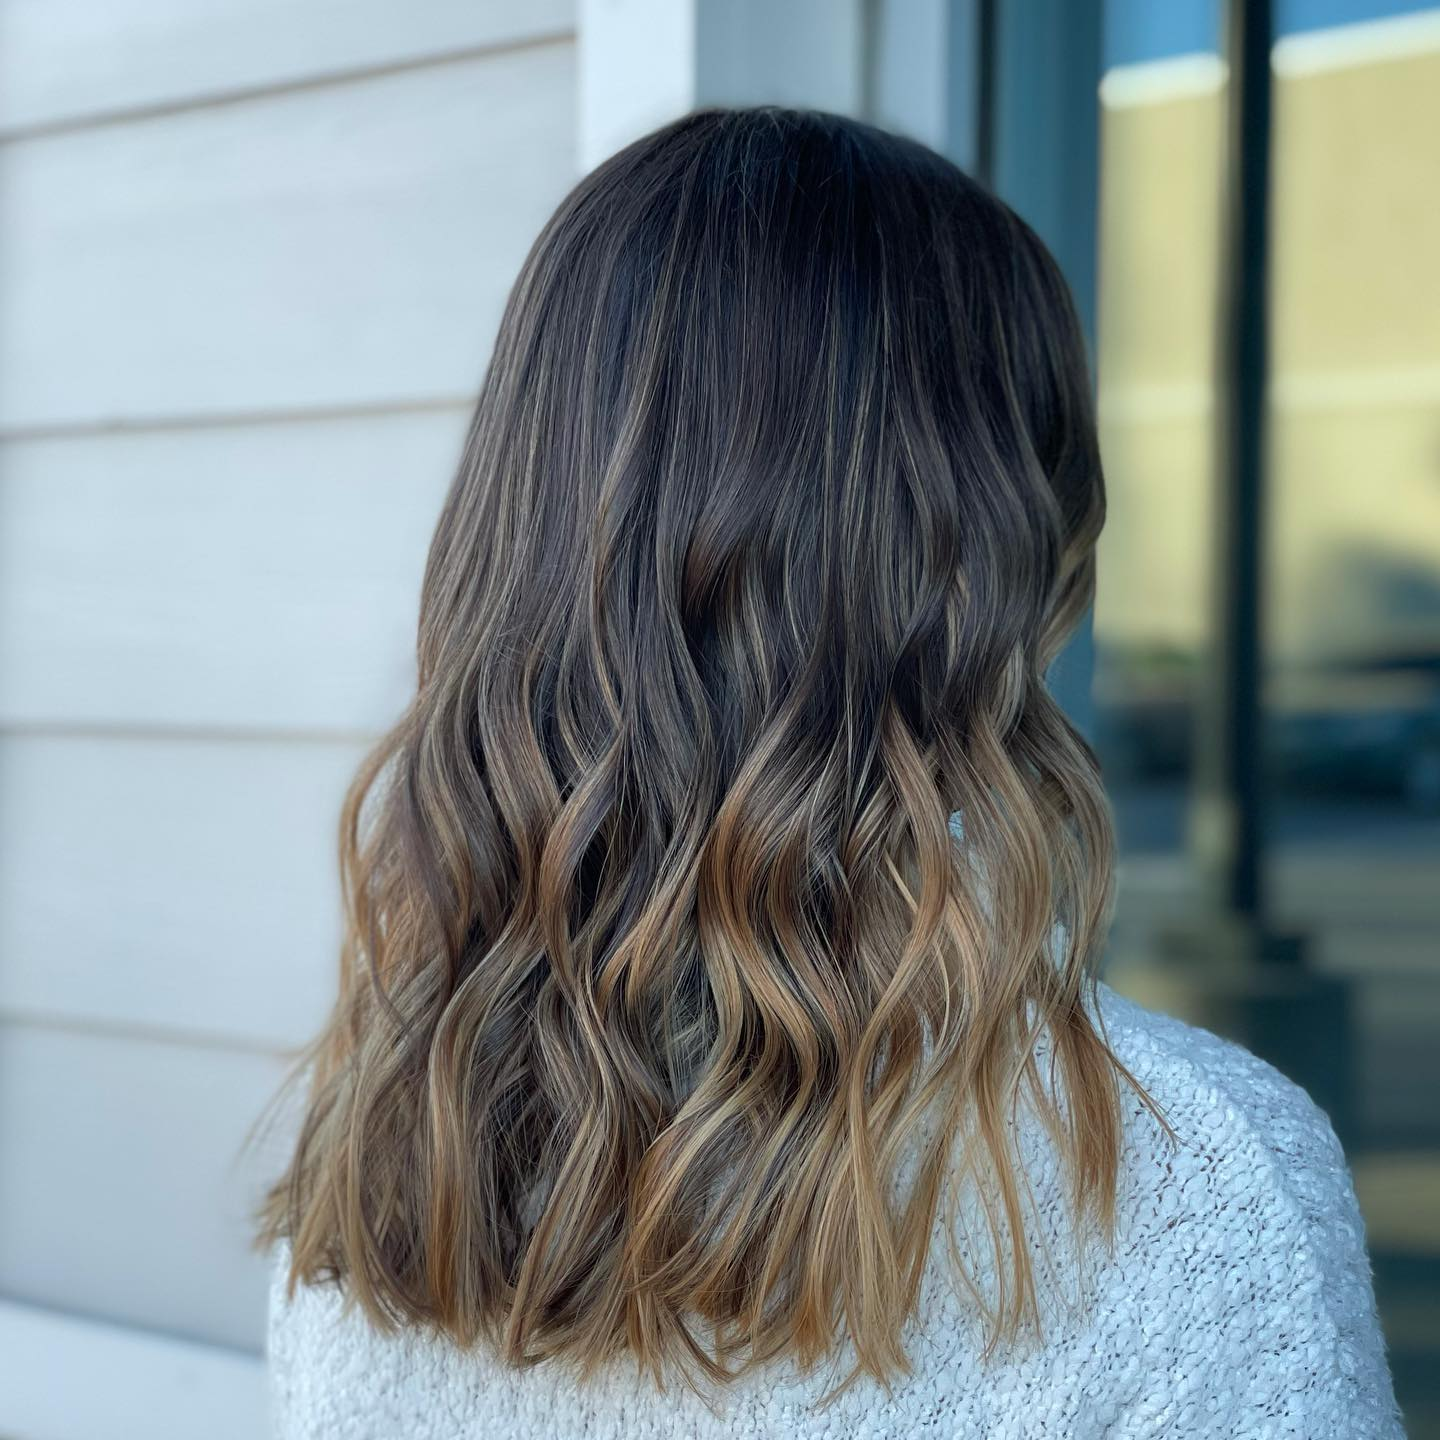 Full service hair studio offering cut, color, highlights, AirTouch, balayage, and styling 1